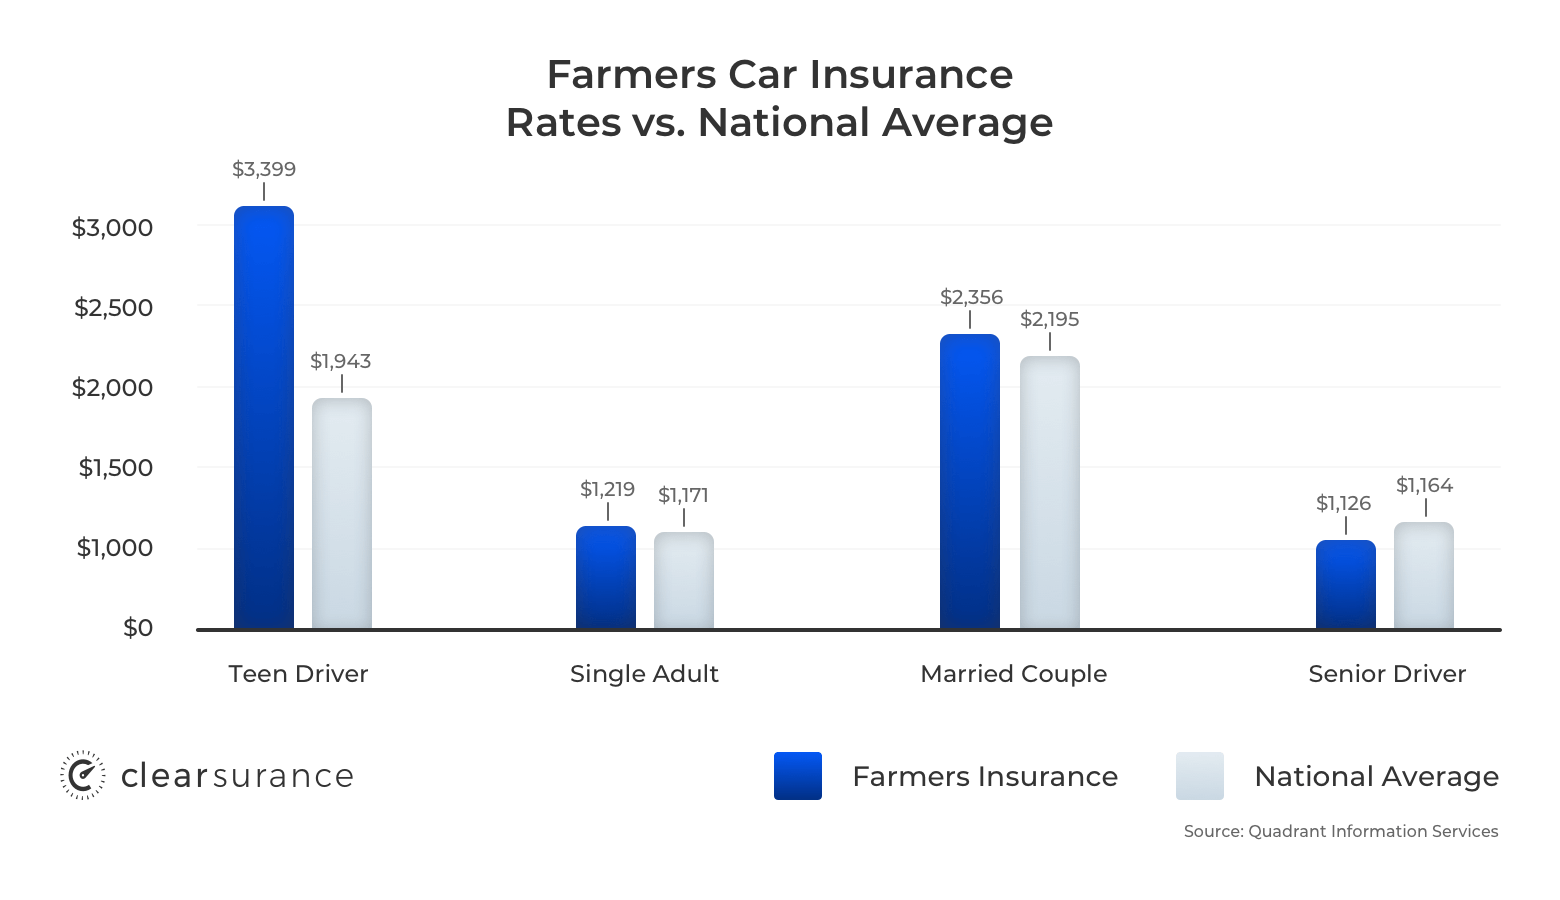 Farmers car insurance rates